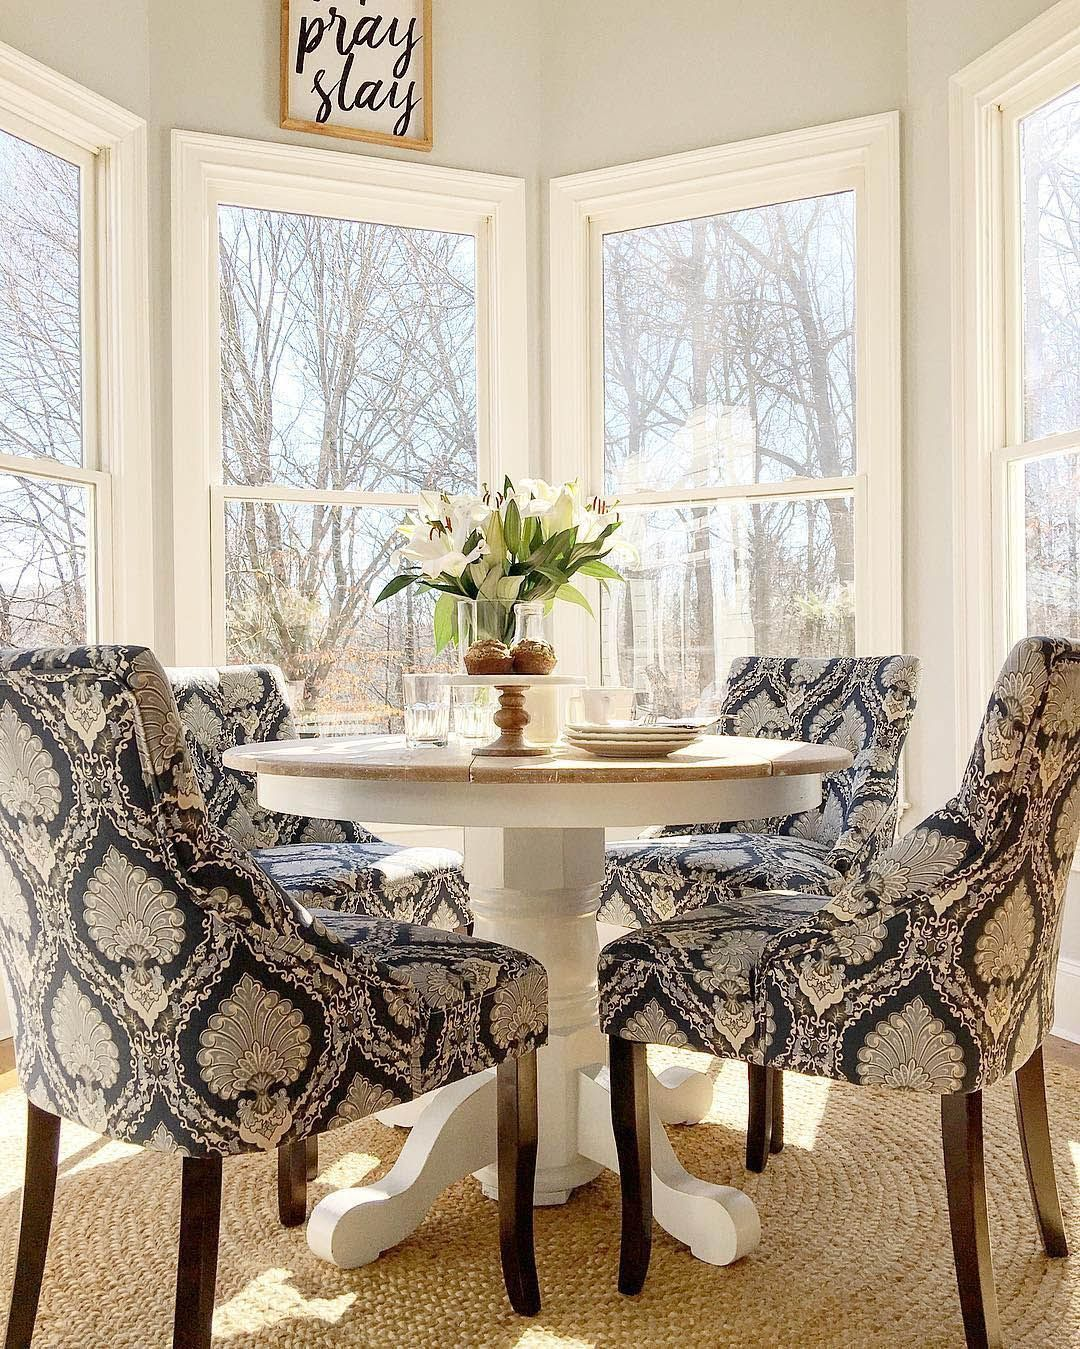 8 Small Kitchen Table Ideas for Your Home   Dining room ...